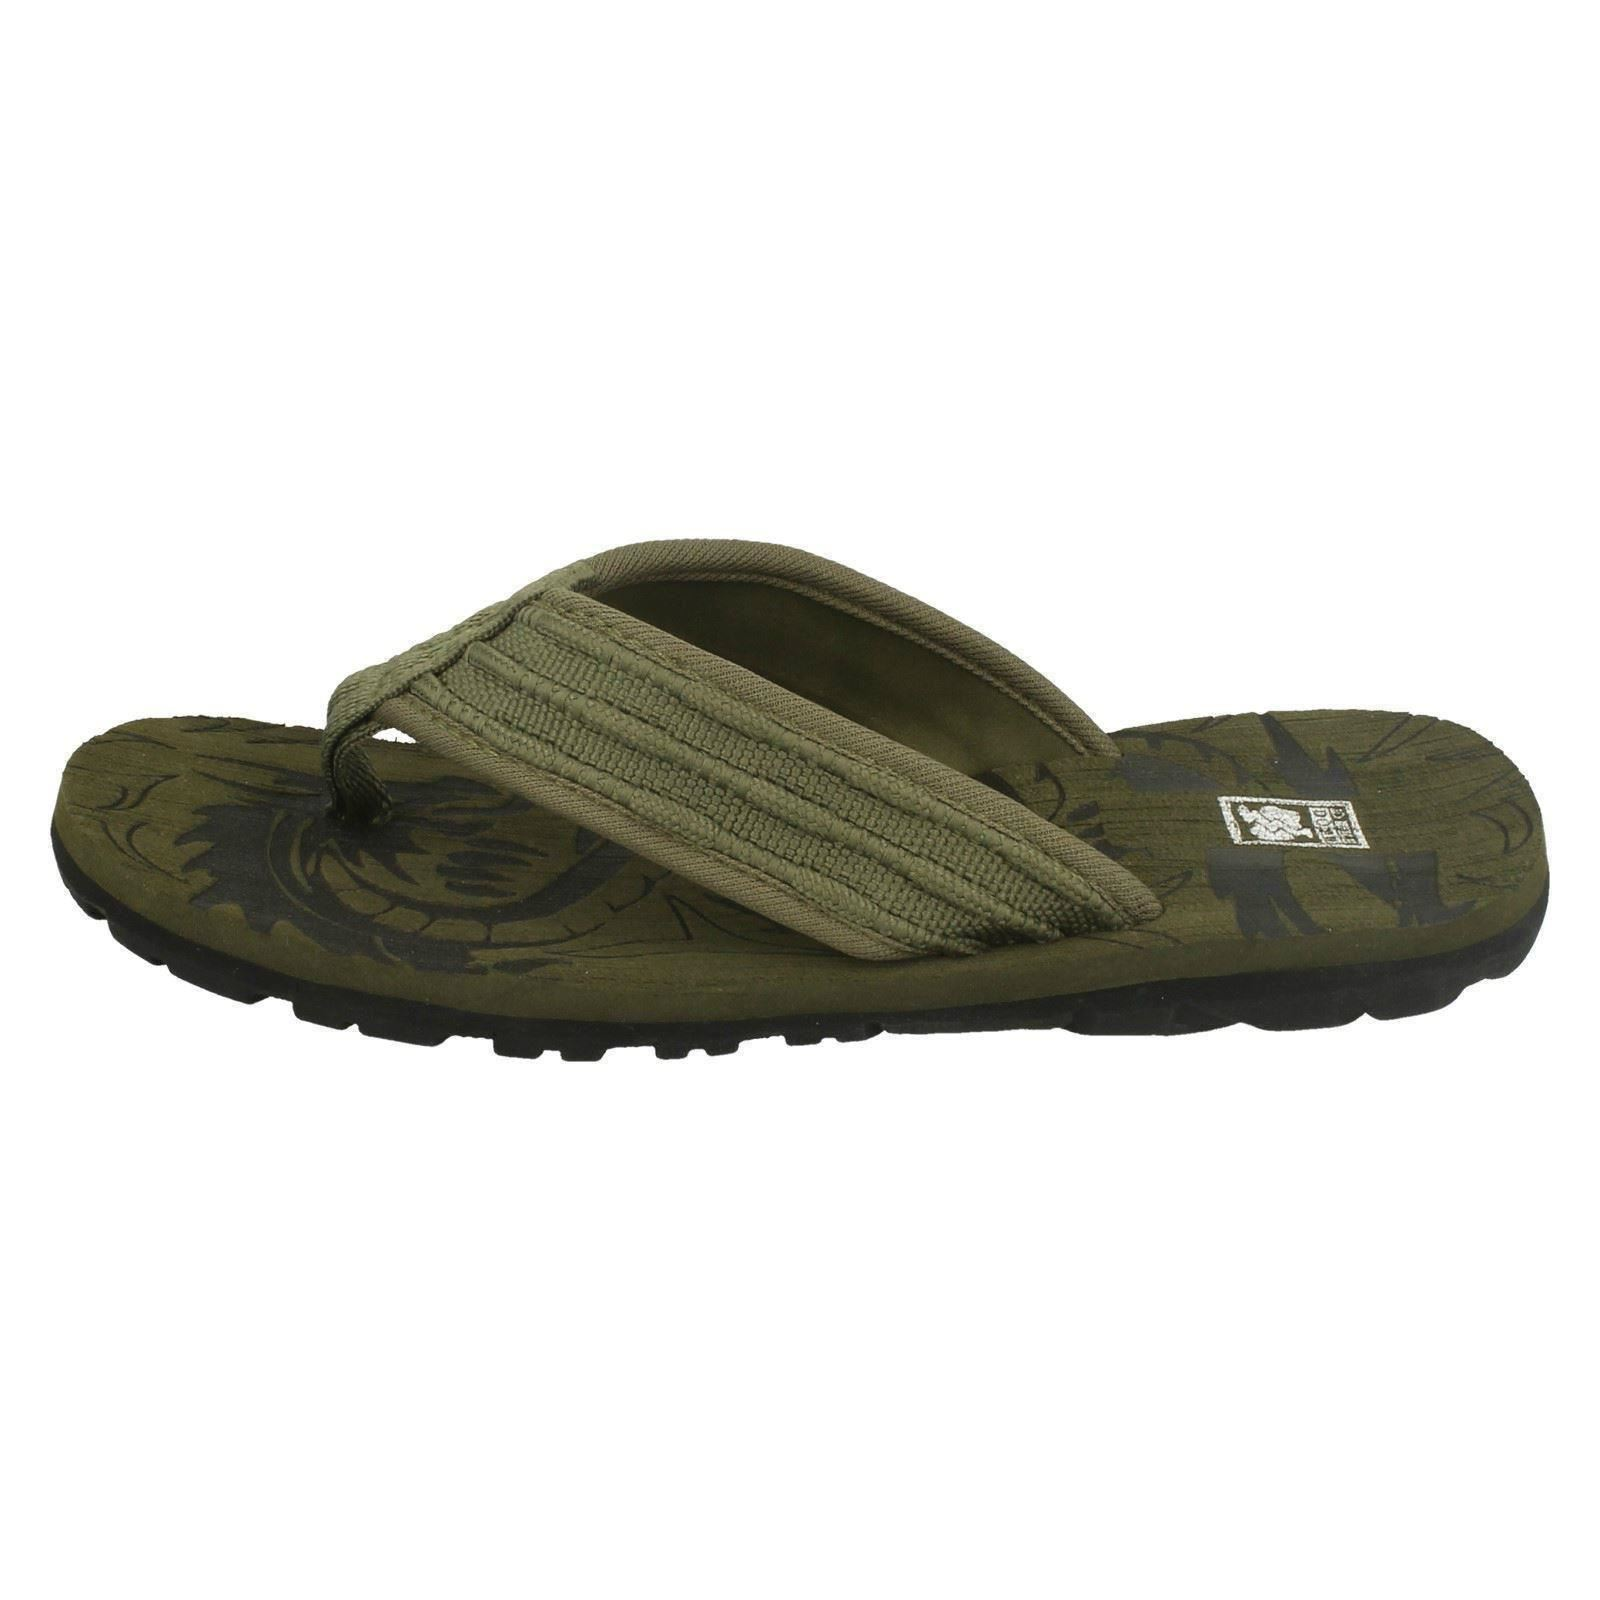 N0R041 Childrens Boys Down To Earth Textile Toe Post Mule Flip Flop Sandals